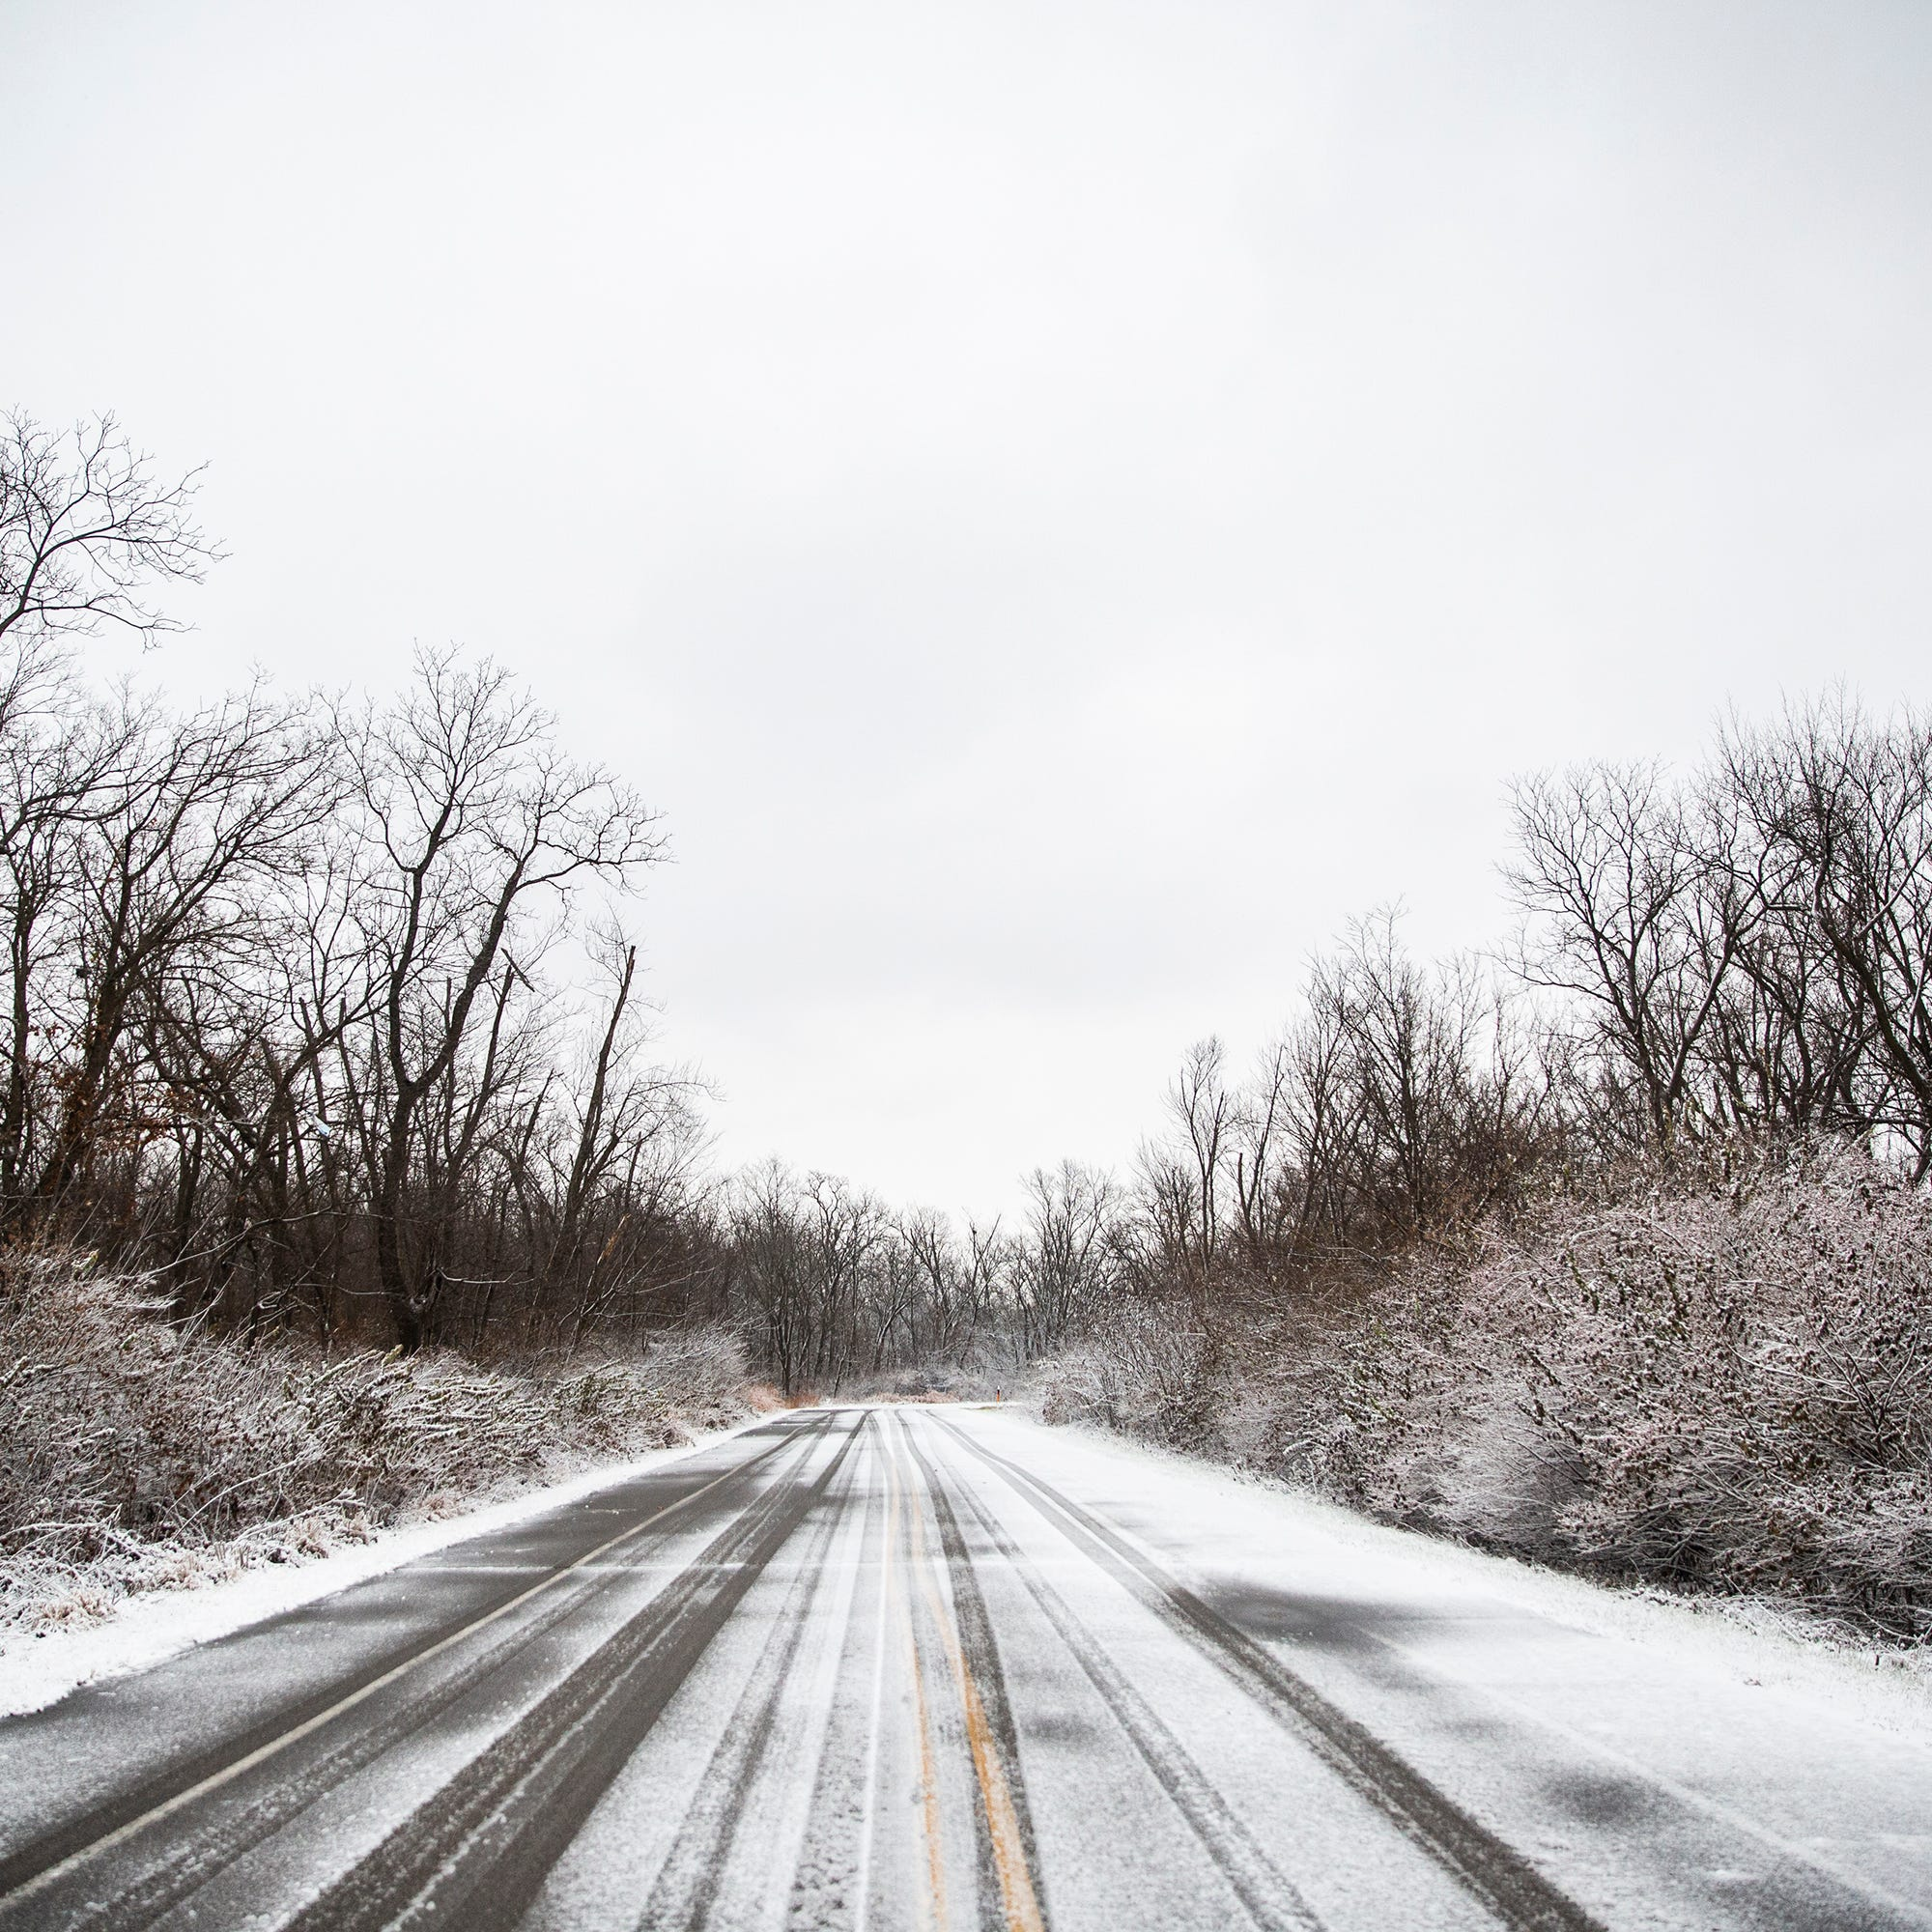 Southern, southeastern Iowa bracing against Sunday-after-Thanksgiving snowstorm